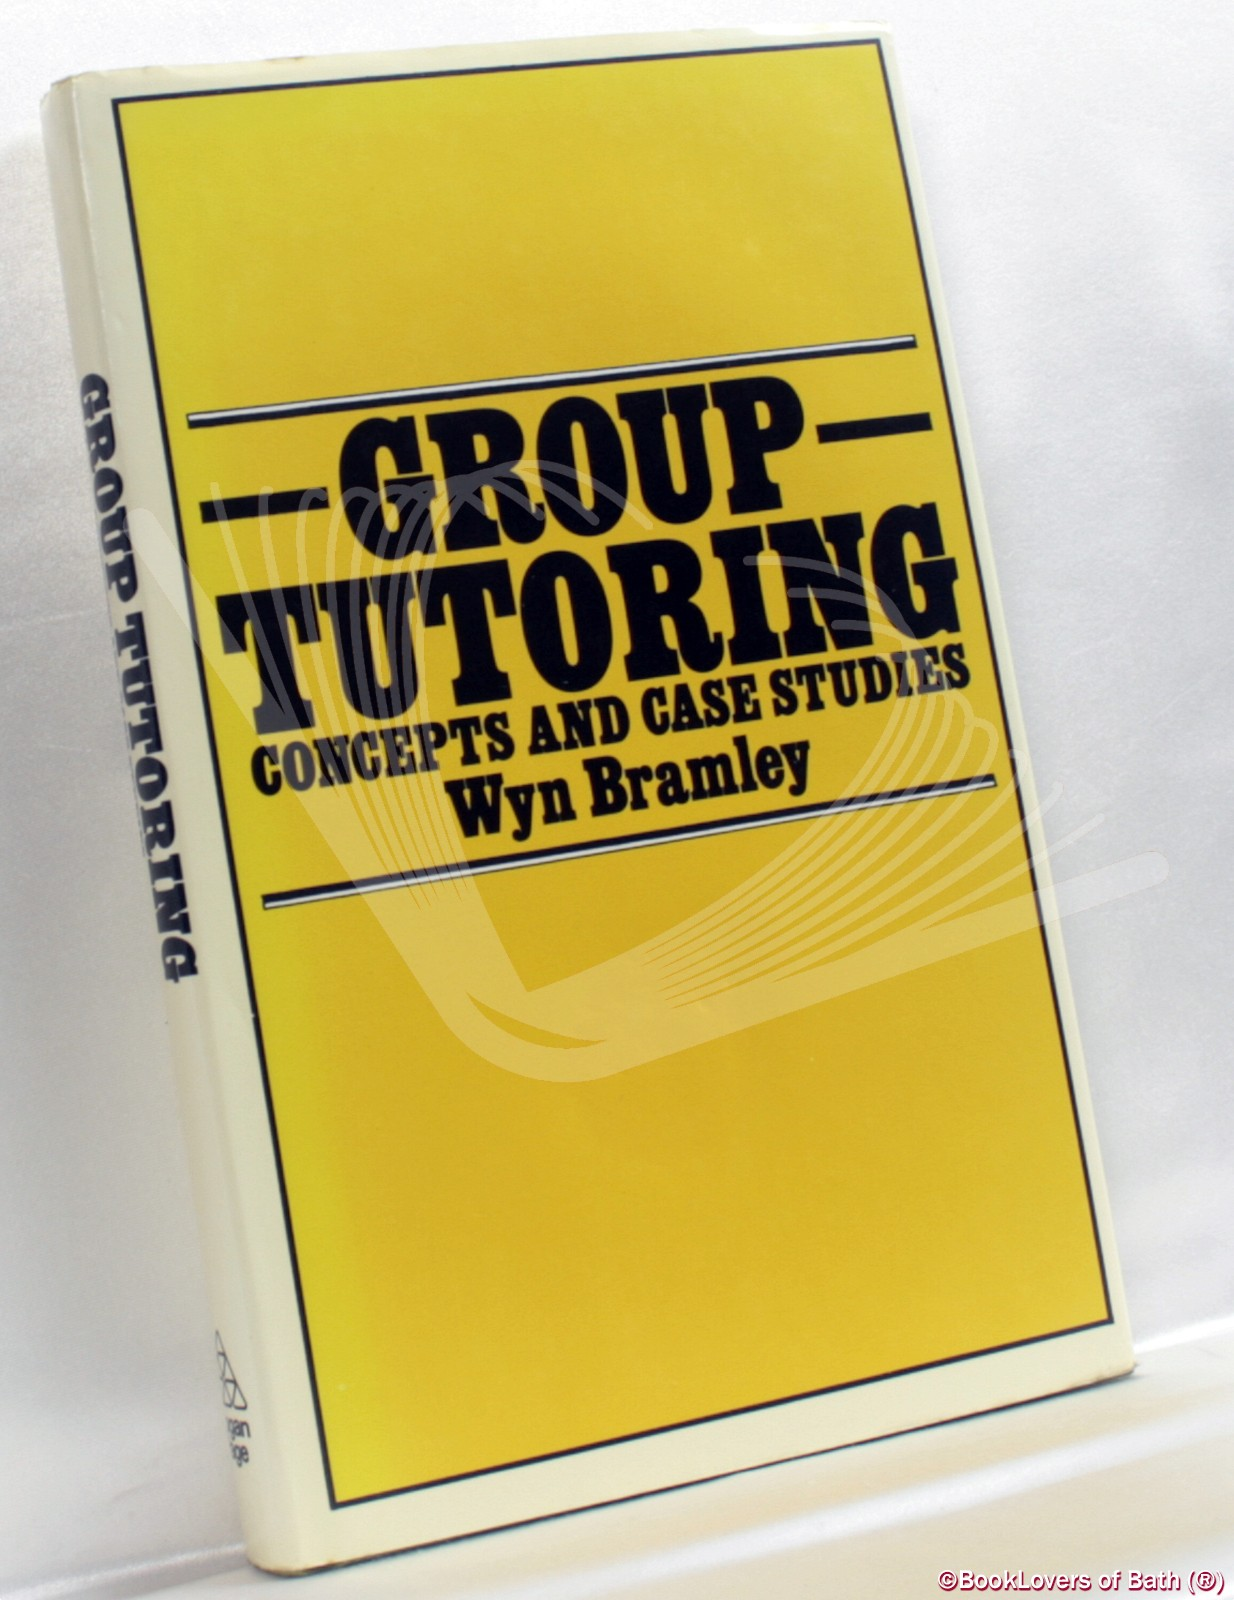 Group Tutoring: Concepts and Case Studies - Wyn Bramley